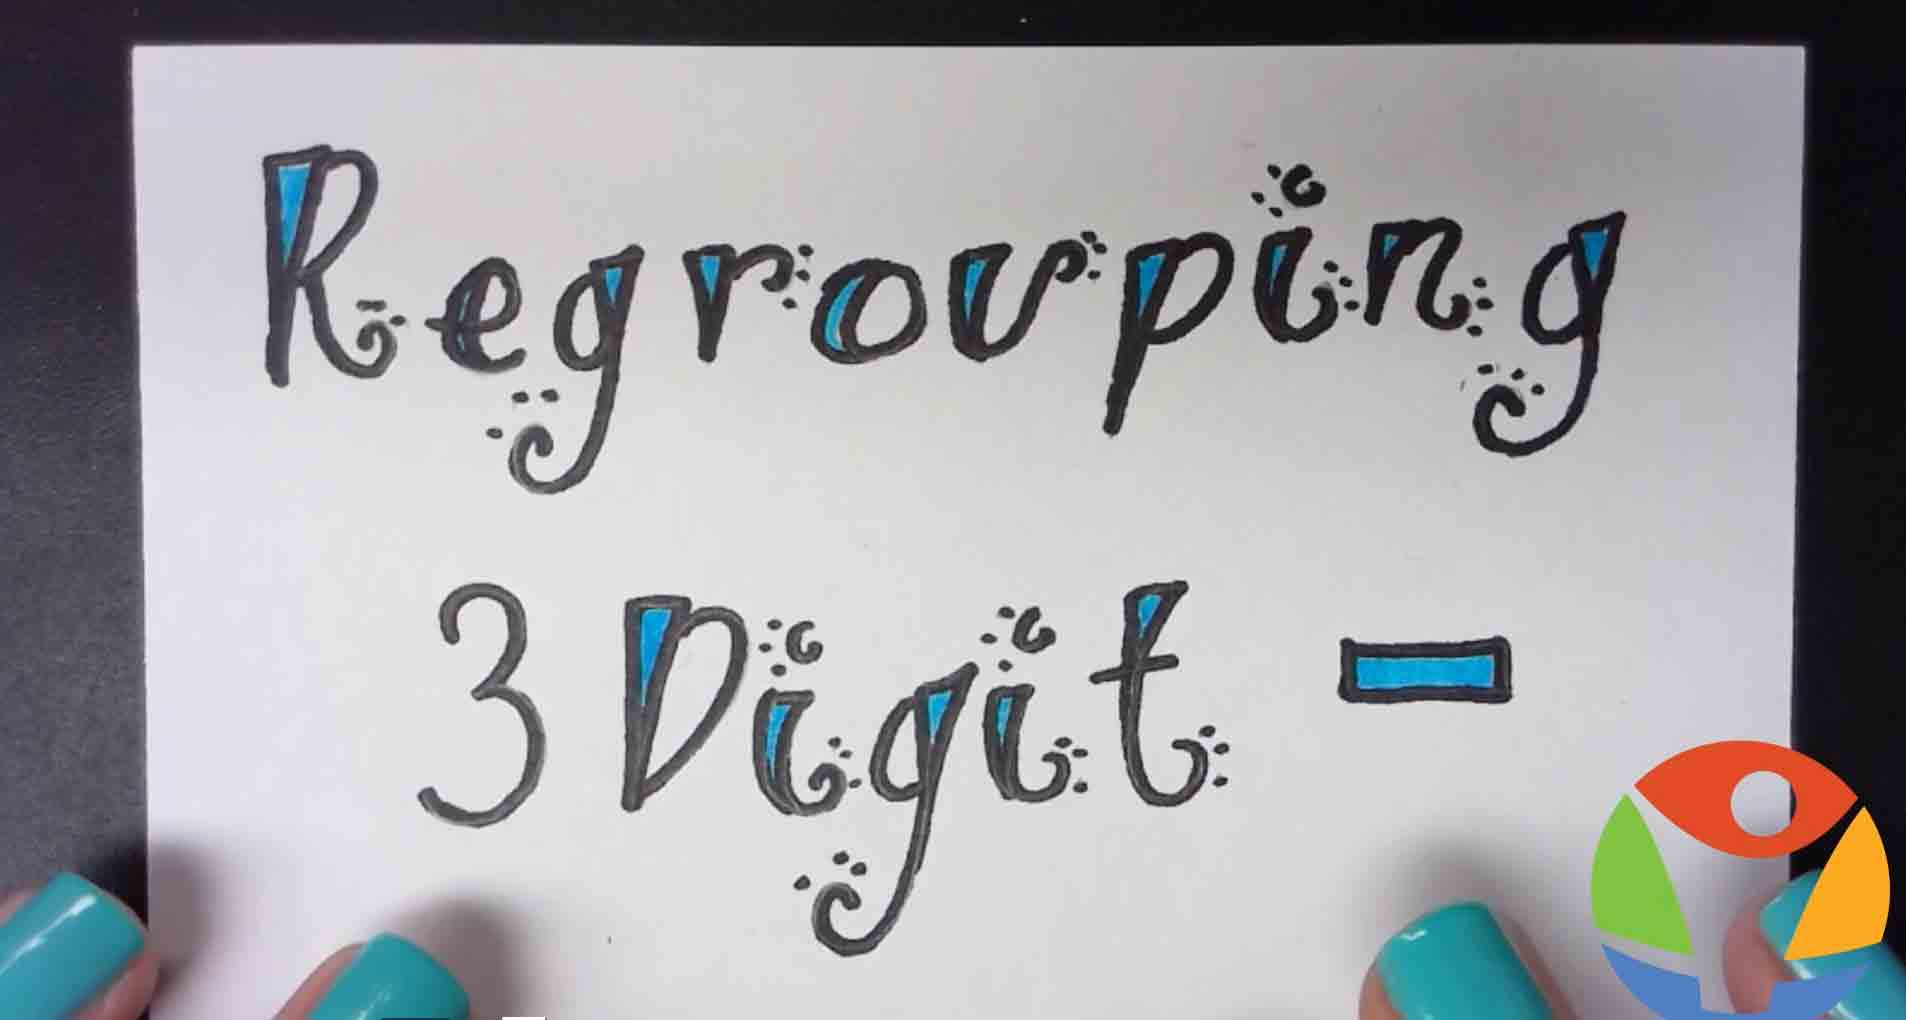 A video cover image on subtraction with regrouping 3 digits to help students master the subtraction of 3 digit numbers with regrouping.